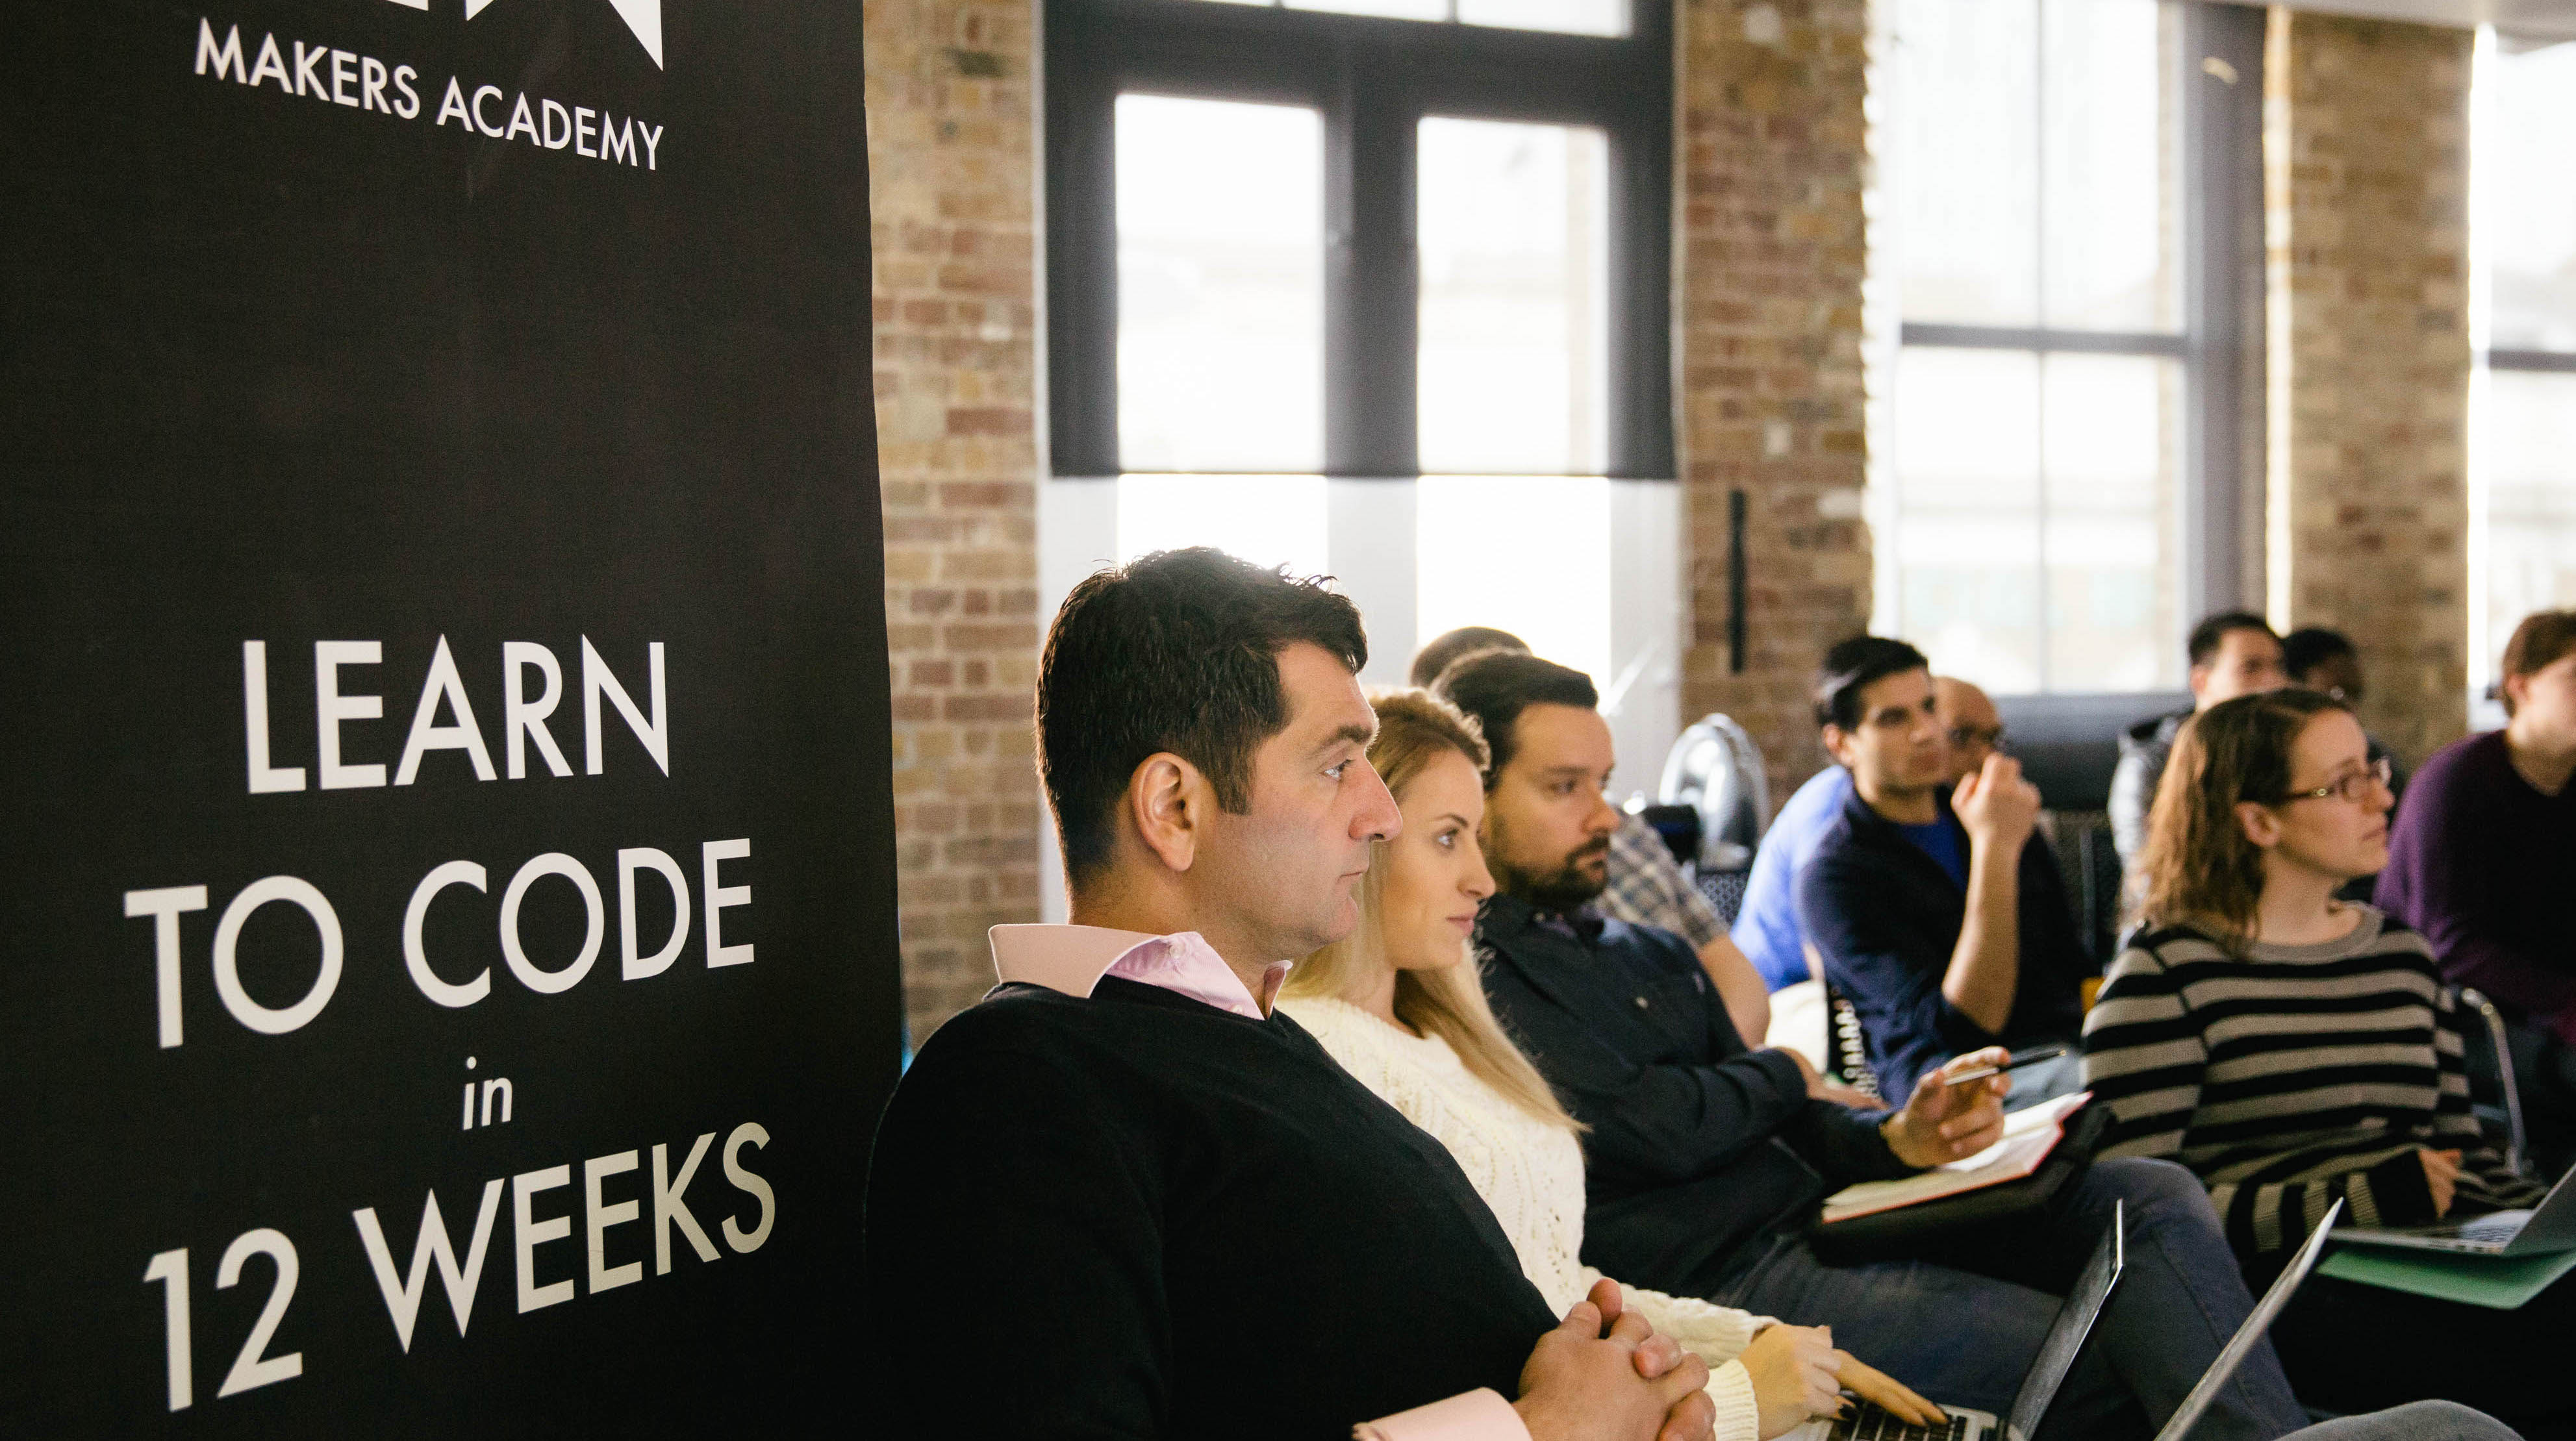 How To Become A Coder In 12-Weeks: Maker Academy